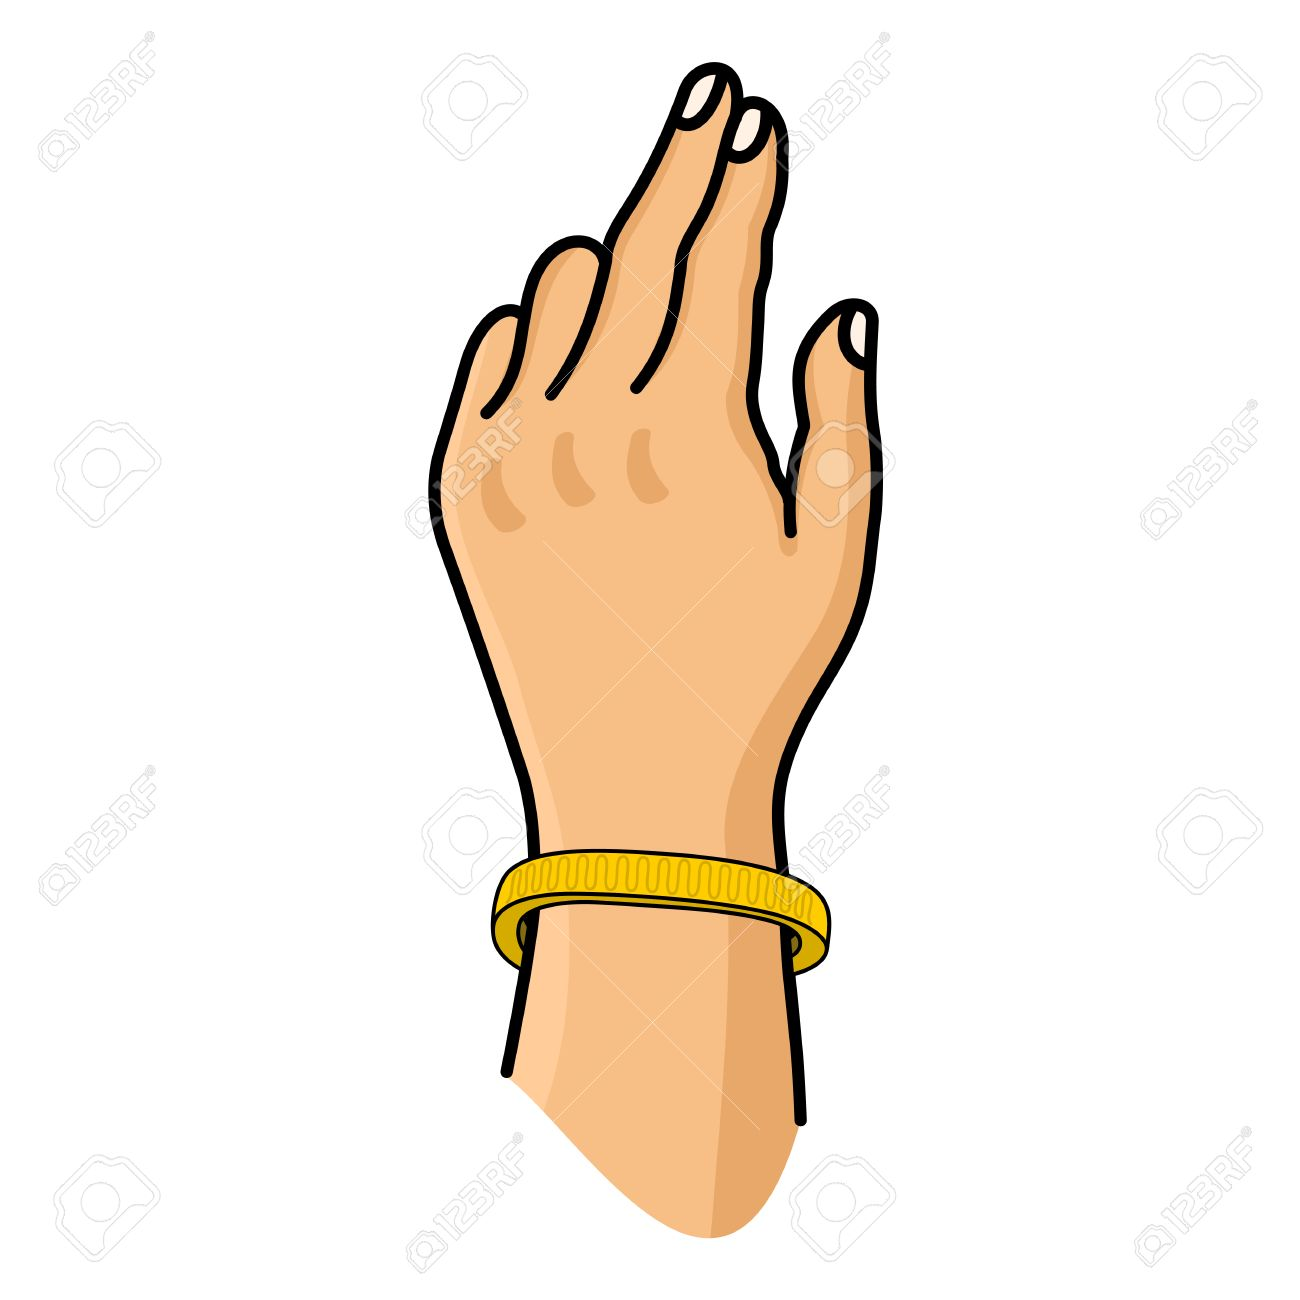 Bracelet On Hand Clipart.